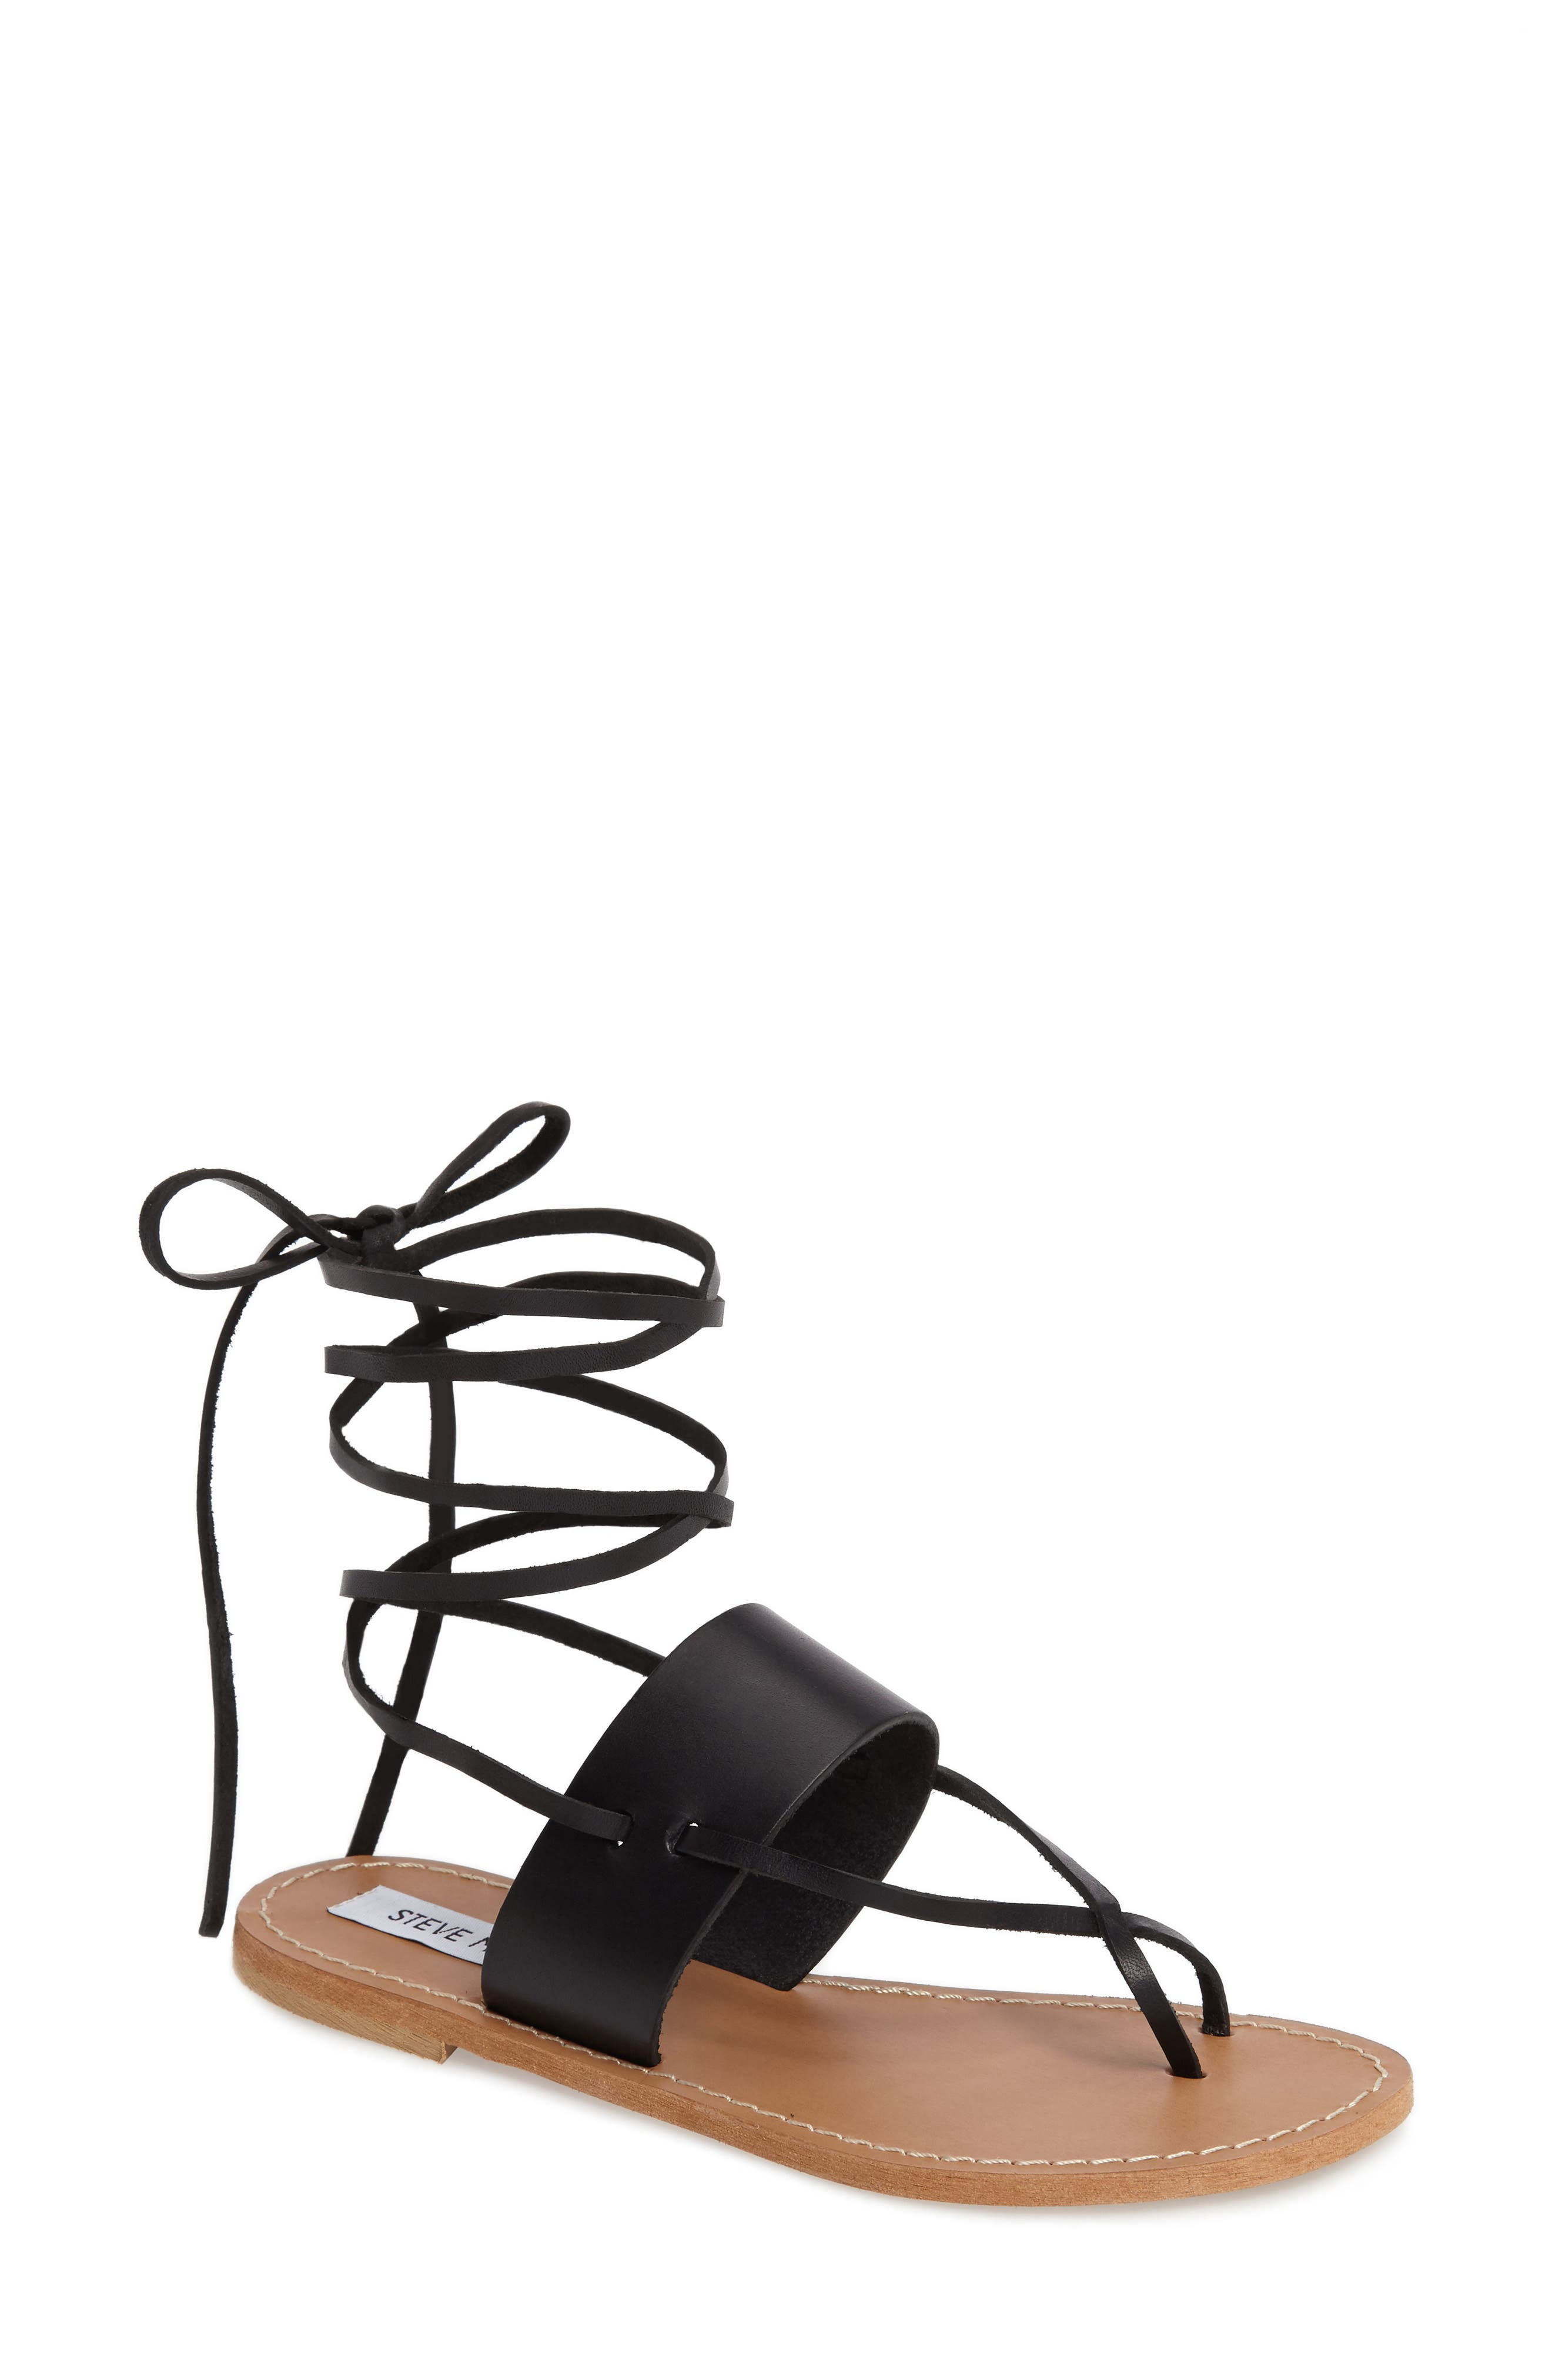 Main Image - Steve Madden Bianca Lace-Up Sandal (Women)